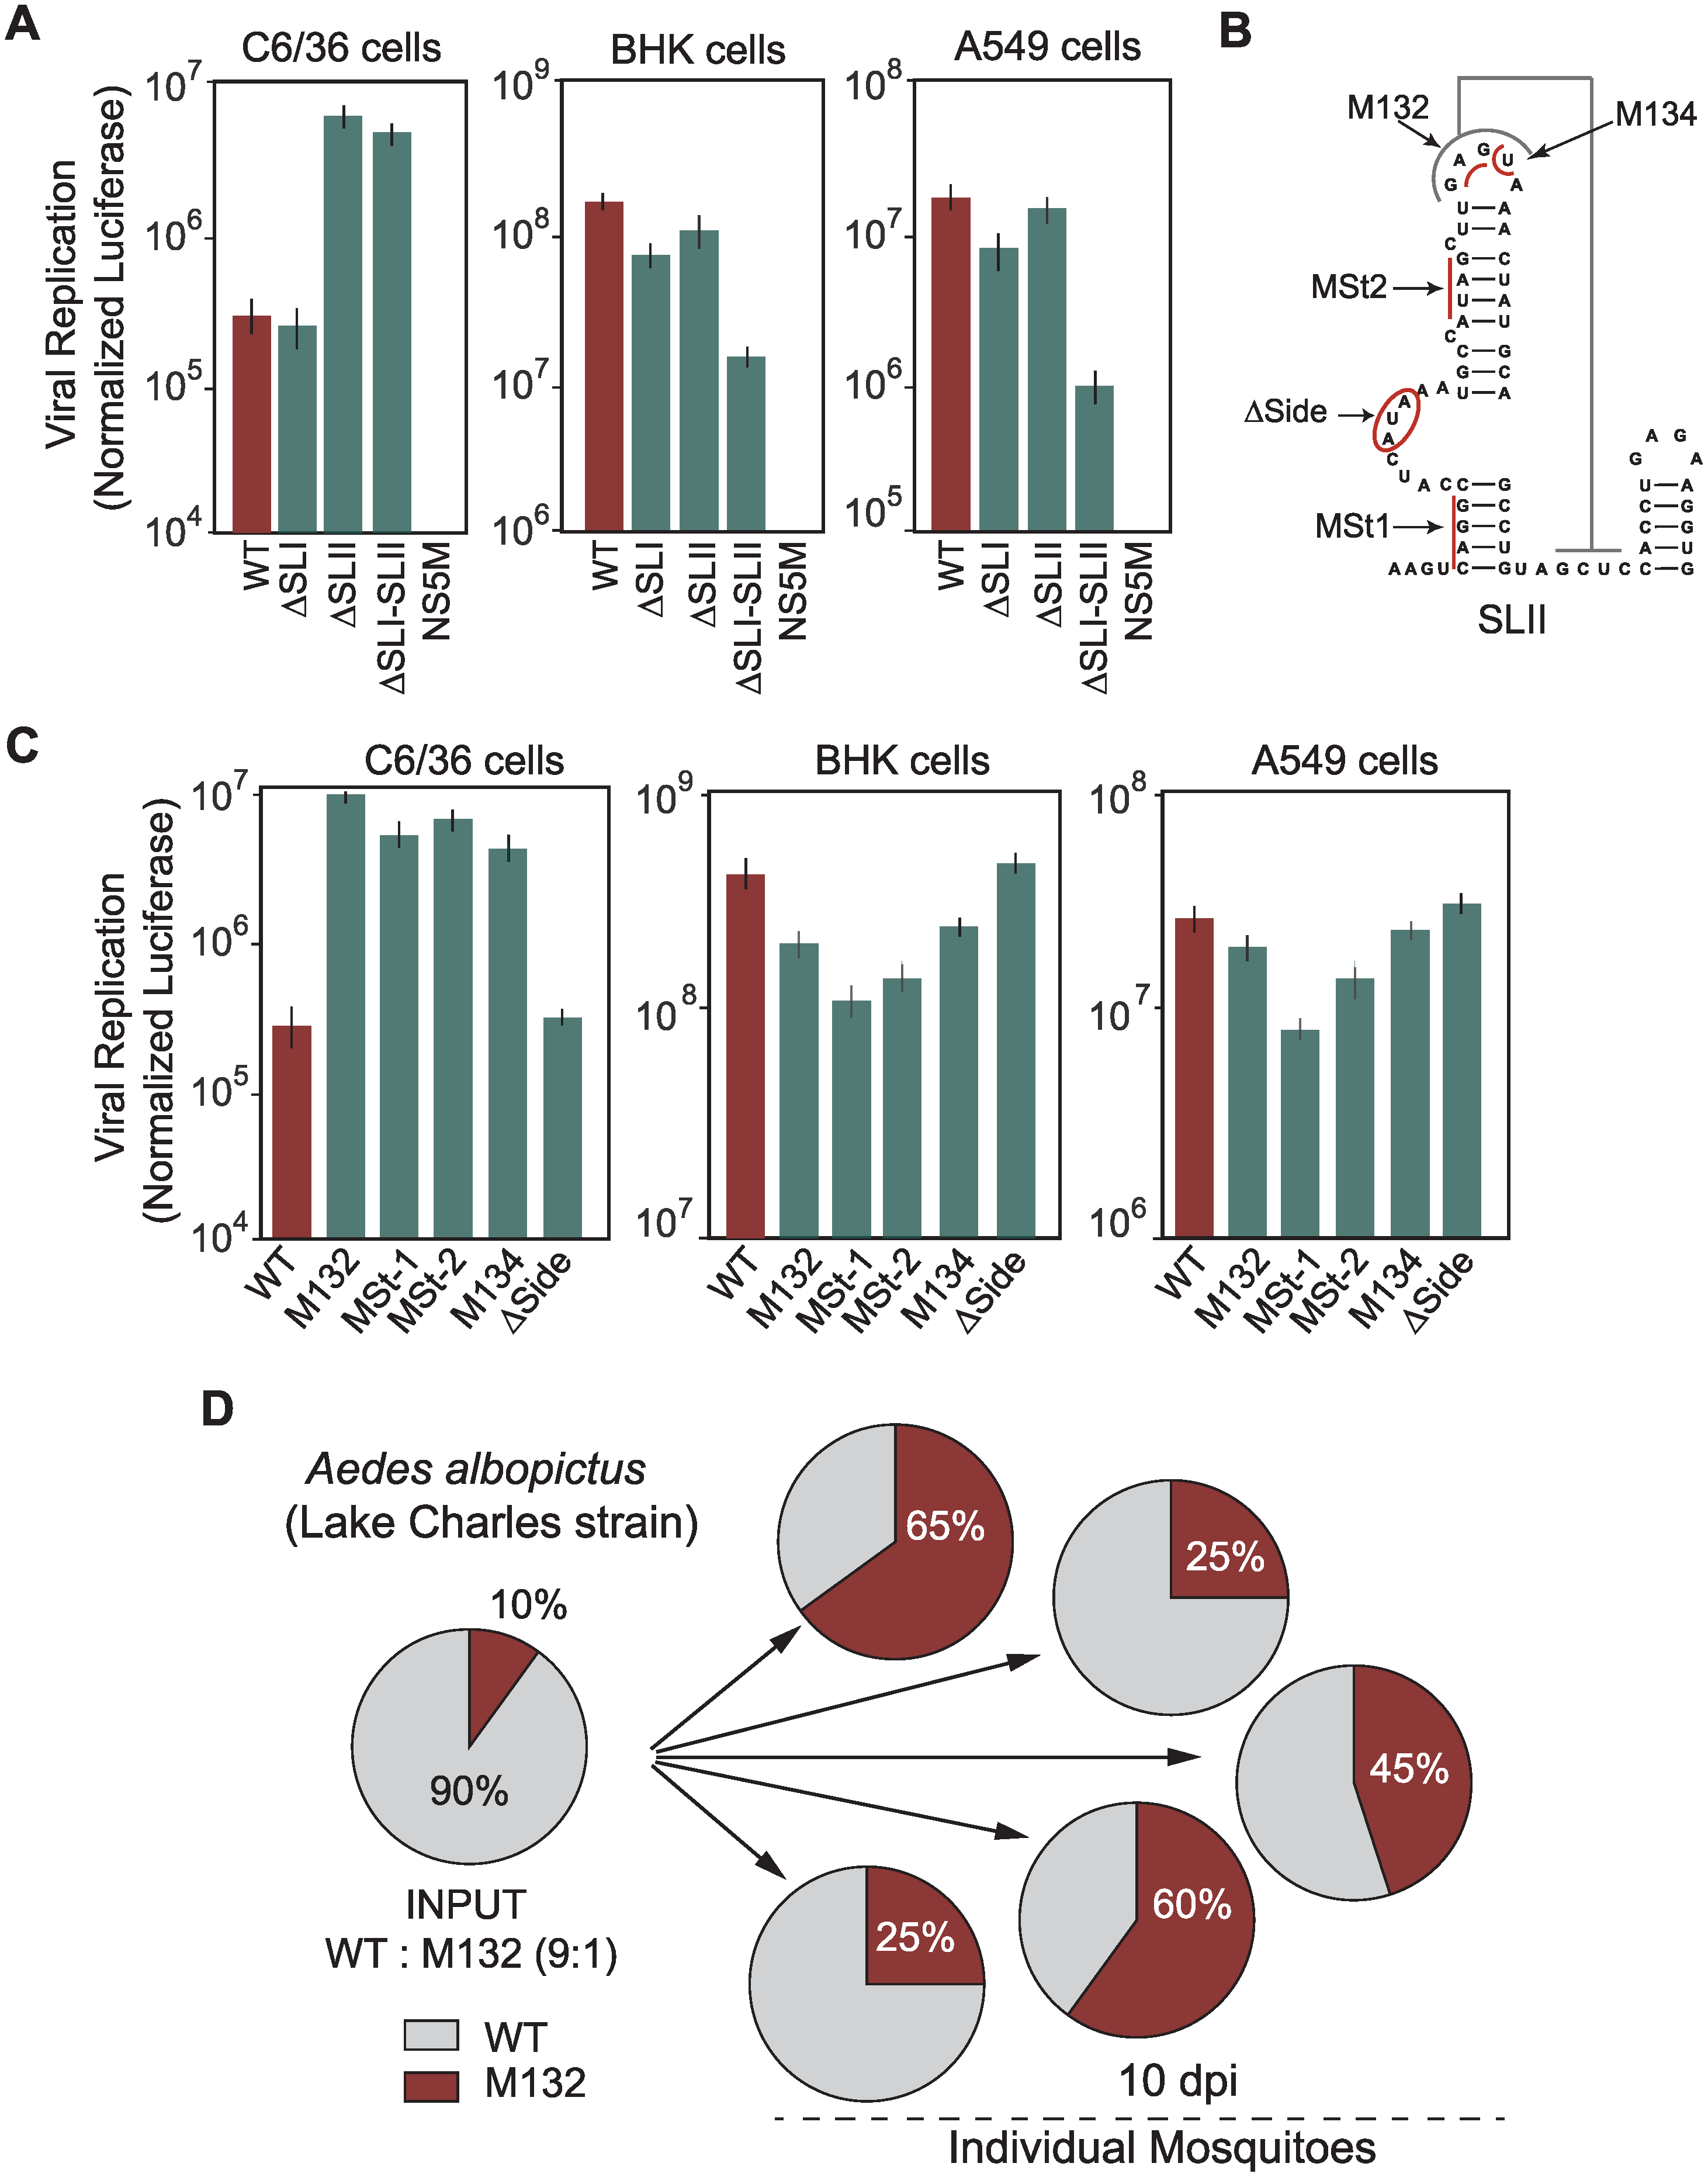 Requirements of DEN-SLI and DEN-SLII for viral replication in mosquito and human cells.